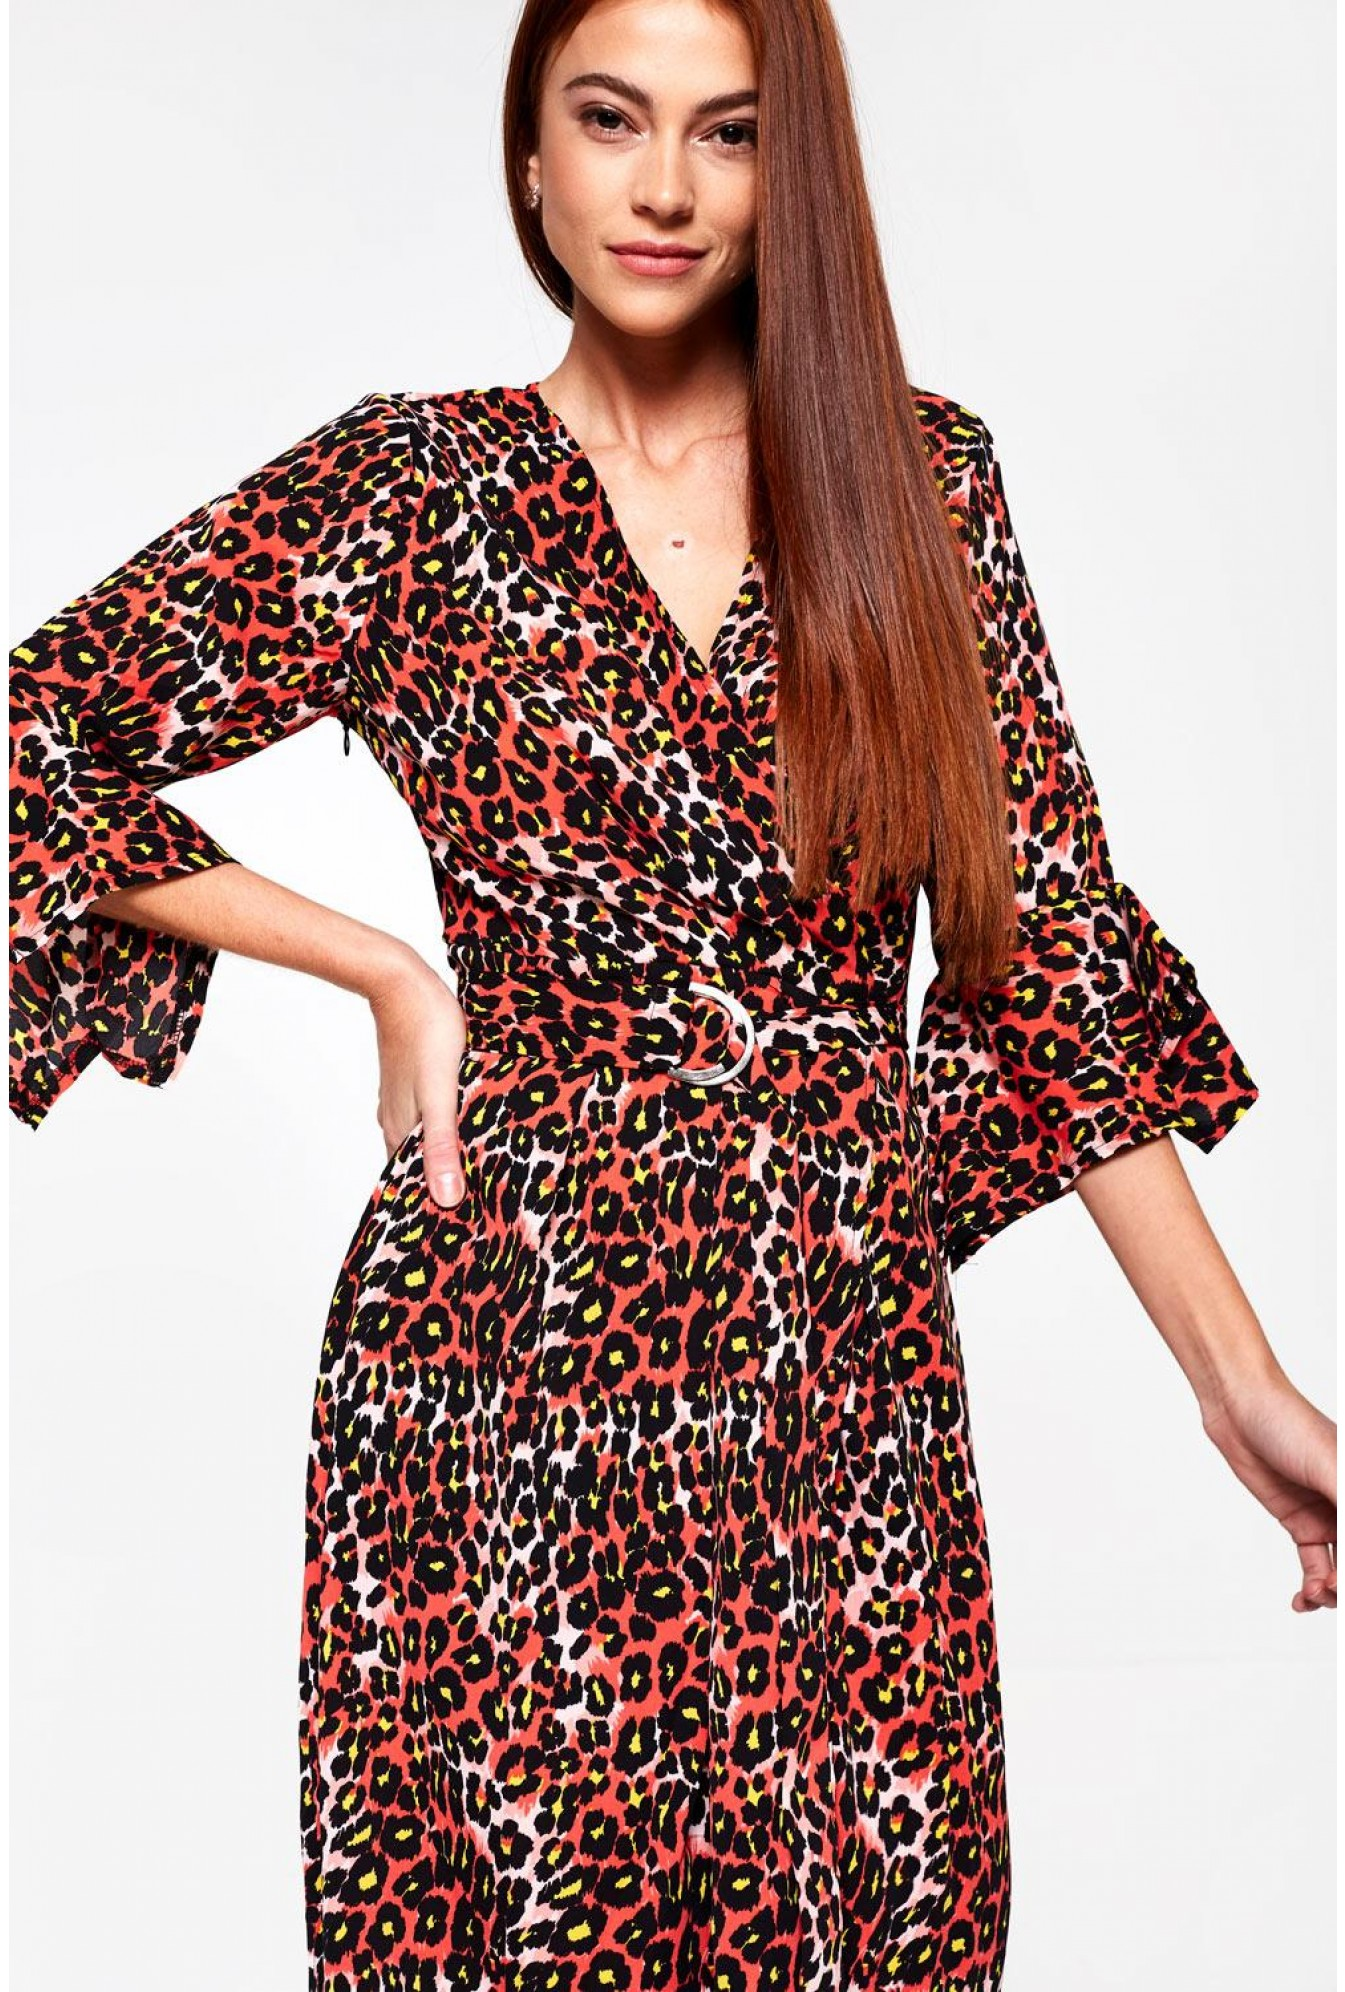 More Views. Angelique Midi Wrap Dress in Red Animal Print 09d7a94d1